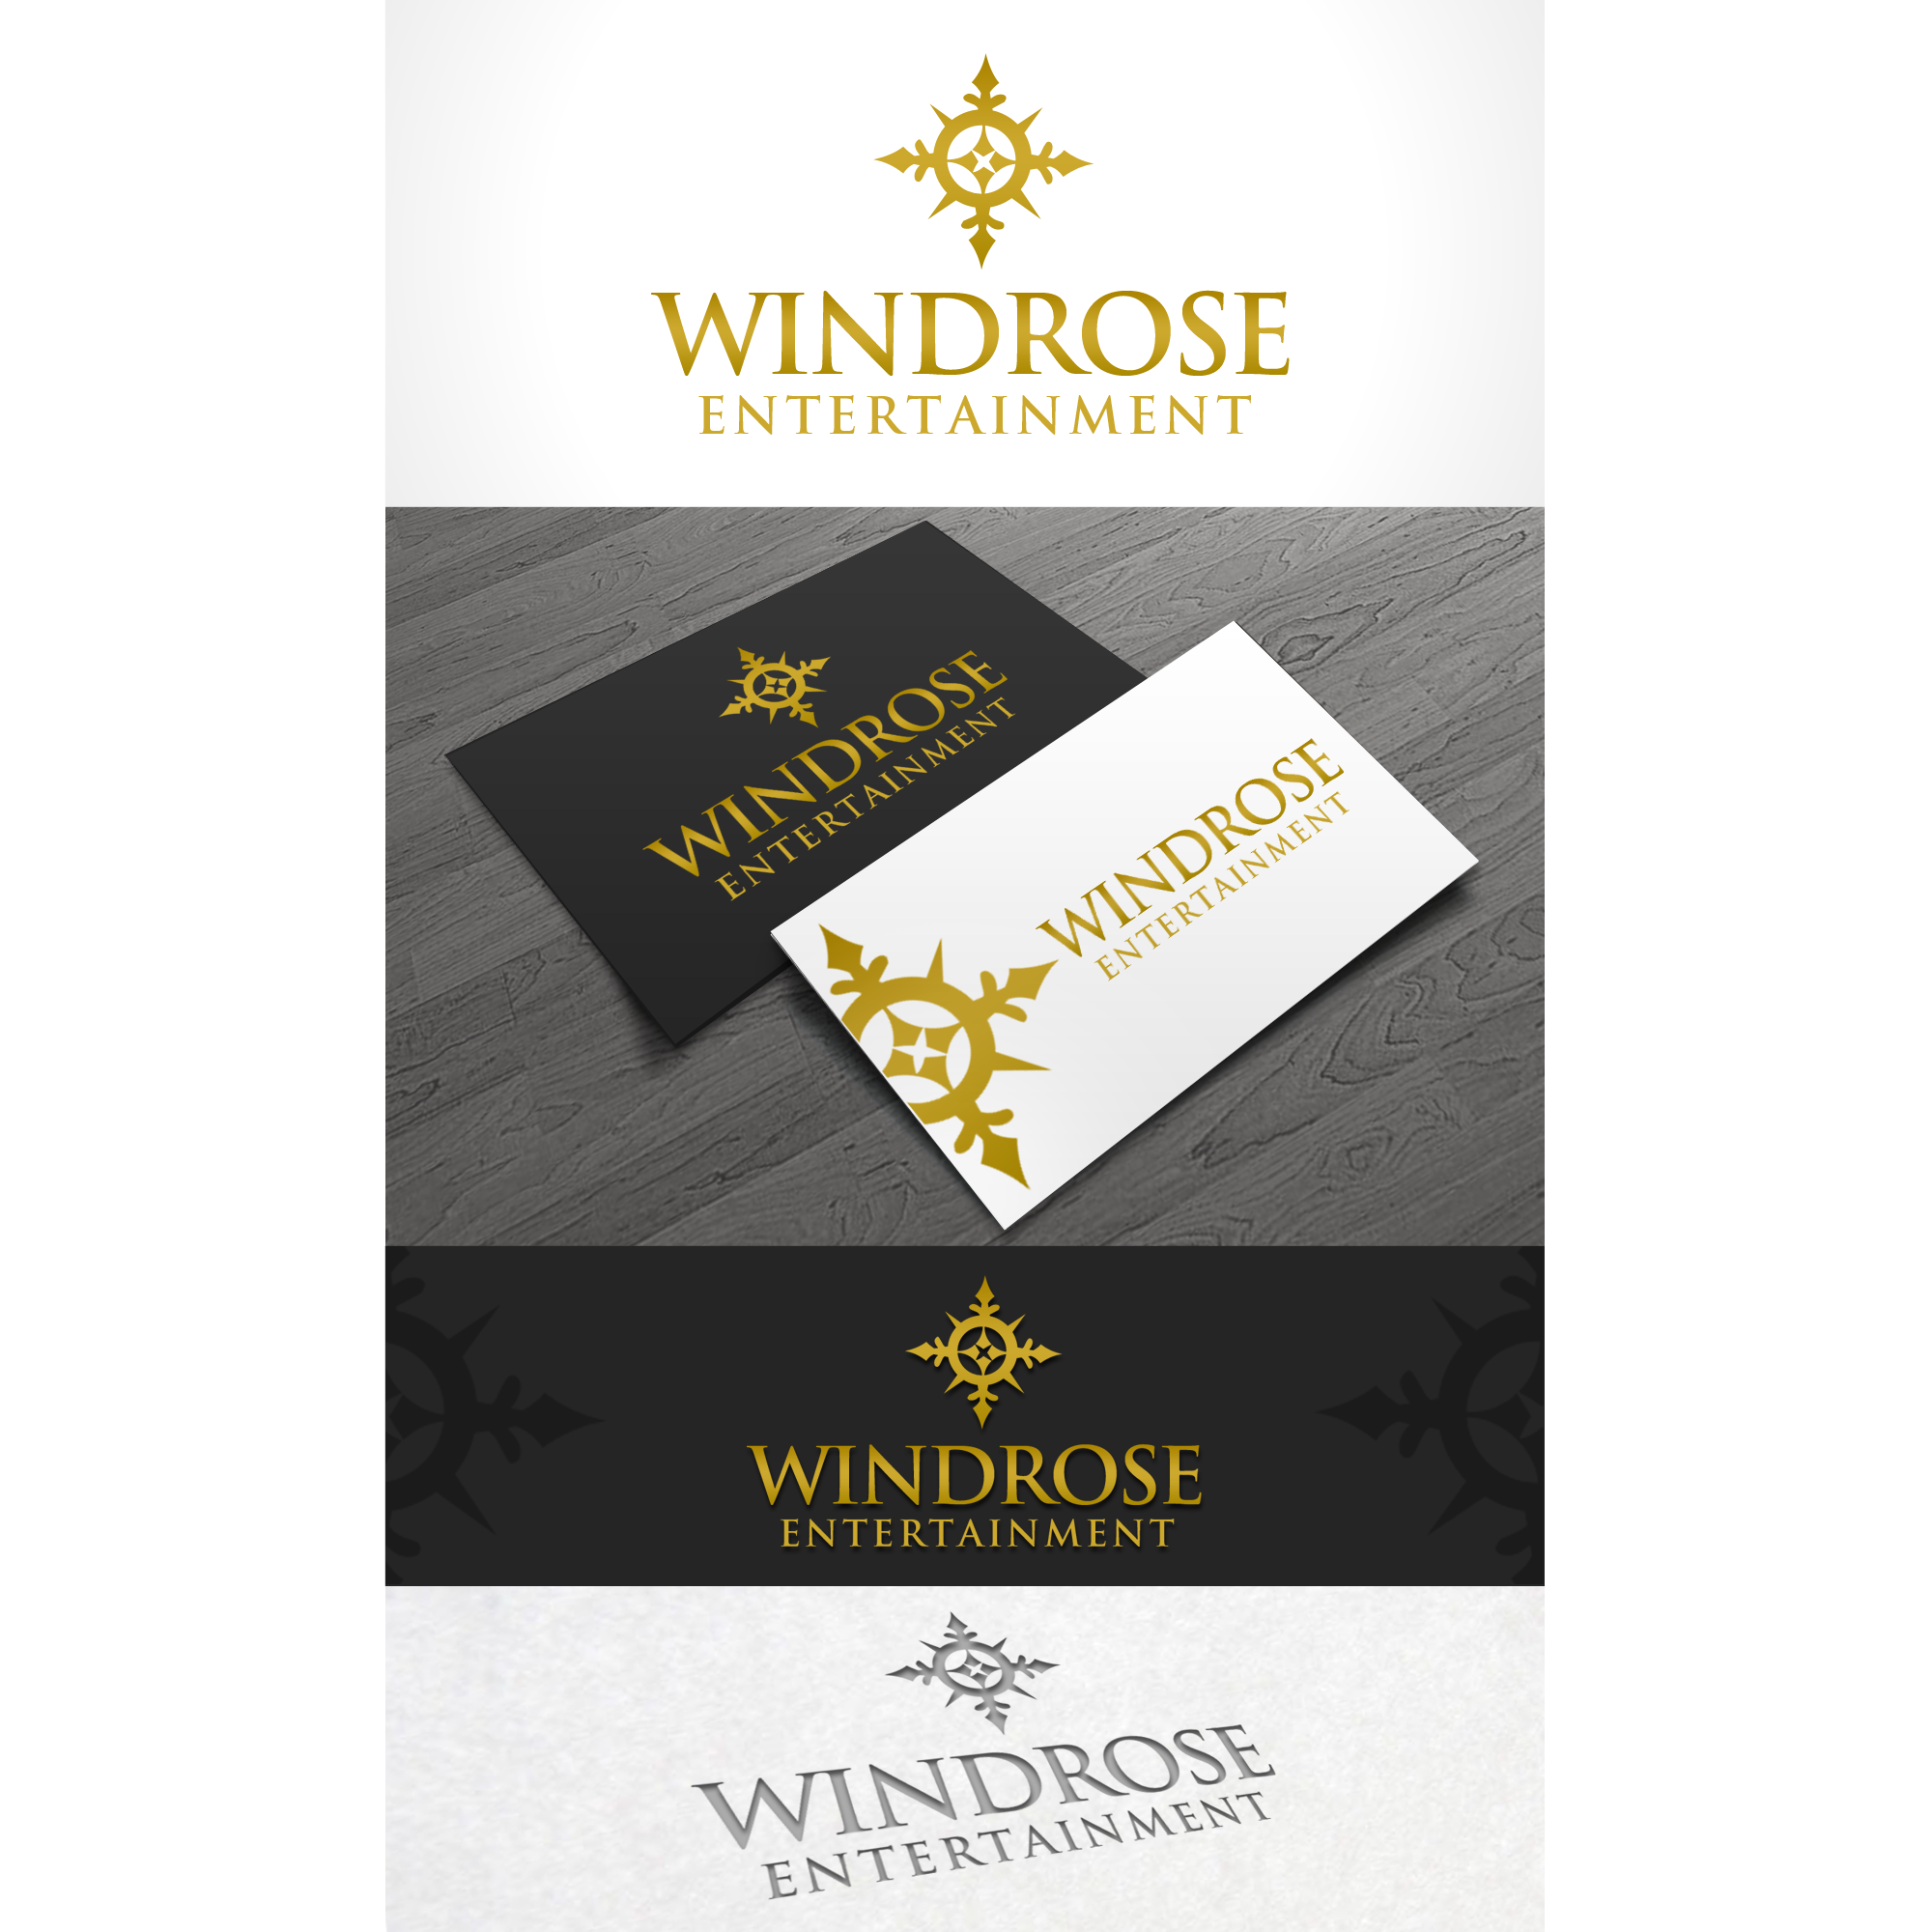 Help Windrose Entertainment with a new logo